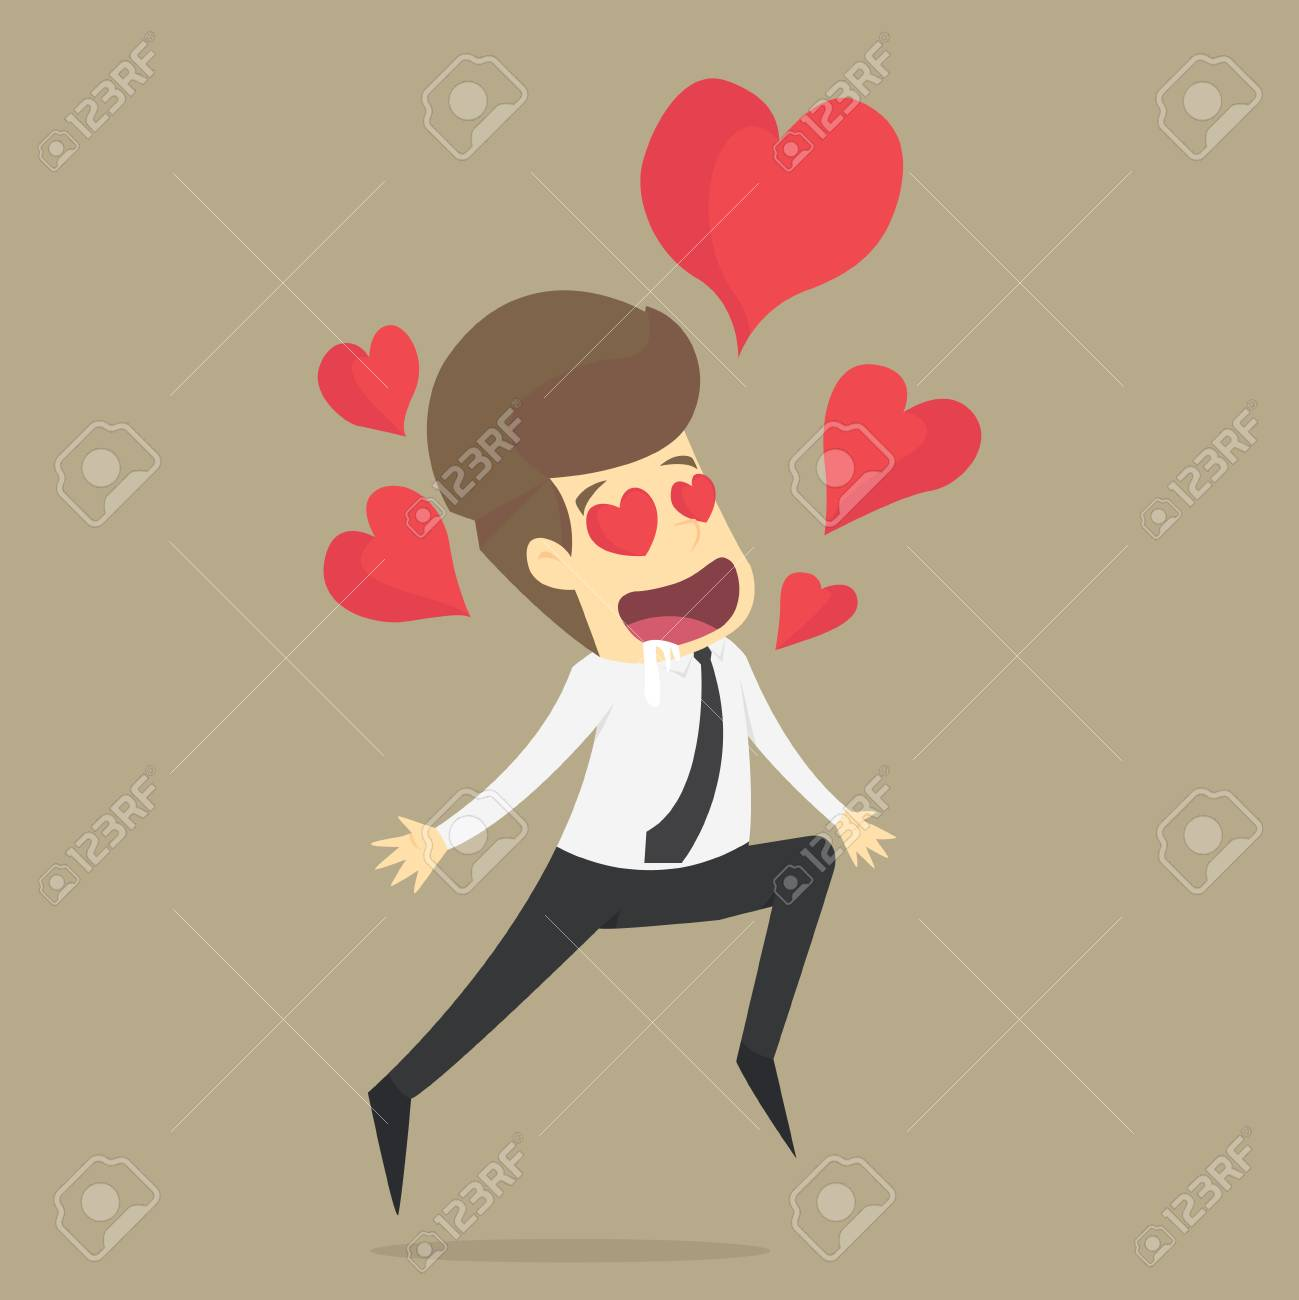 Businessman In Love. Fall In Love.VECTOR. Royalty Free Cliparts, Vectors,  And Stock Illustration. Image 79235933.